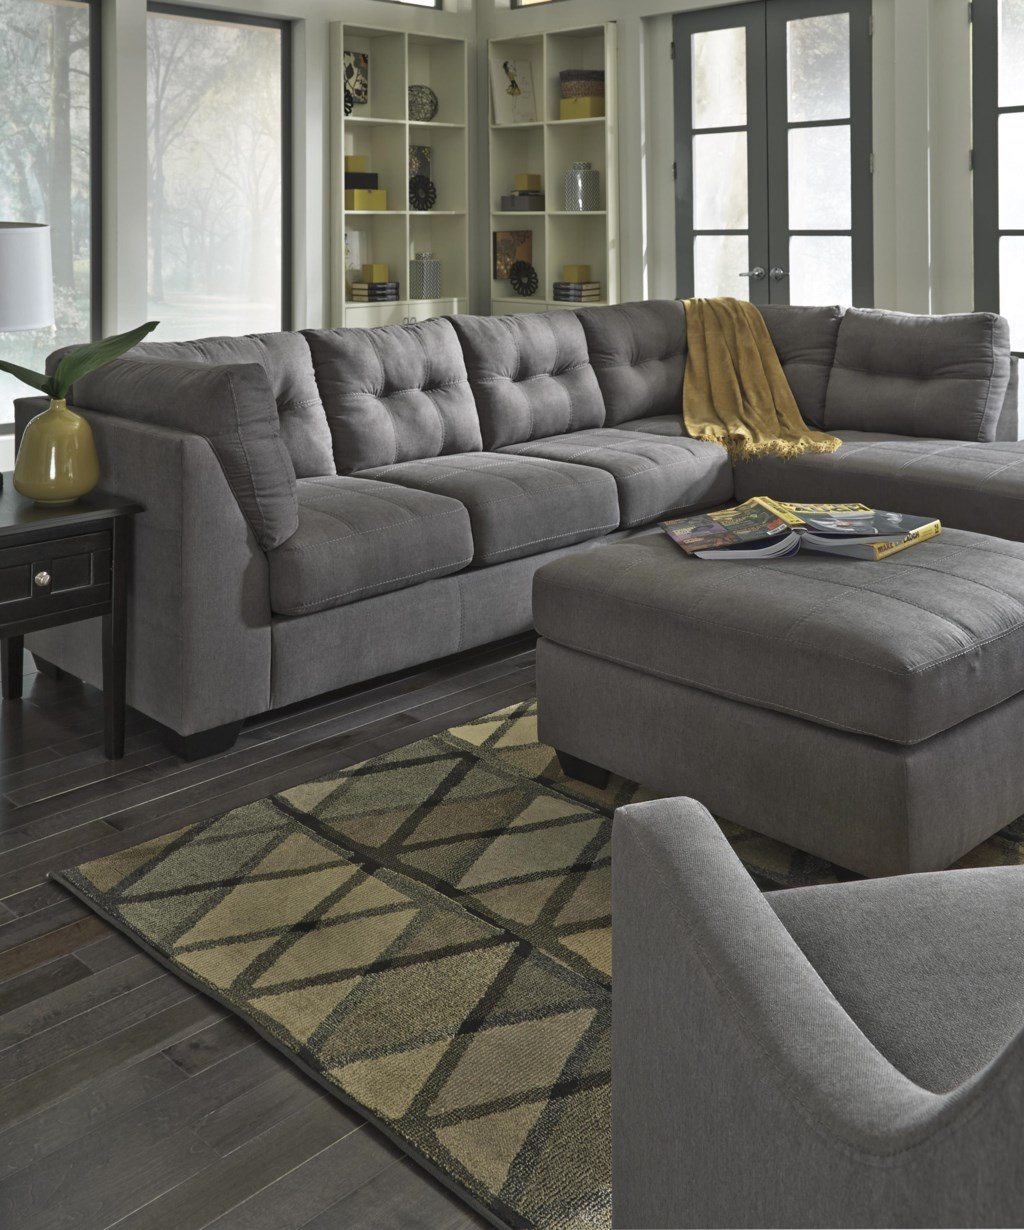 Benchcraft by Ashley Maier Charcoal 2 Piece Sectional with Right